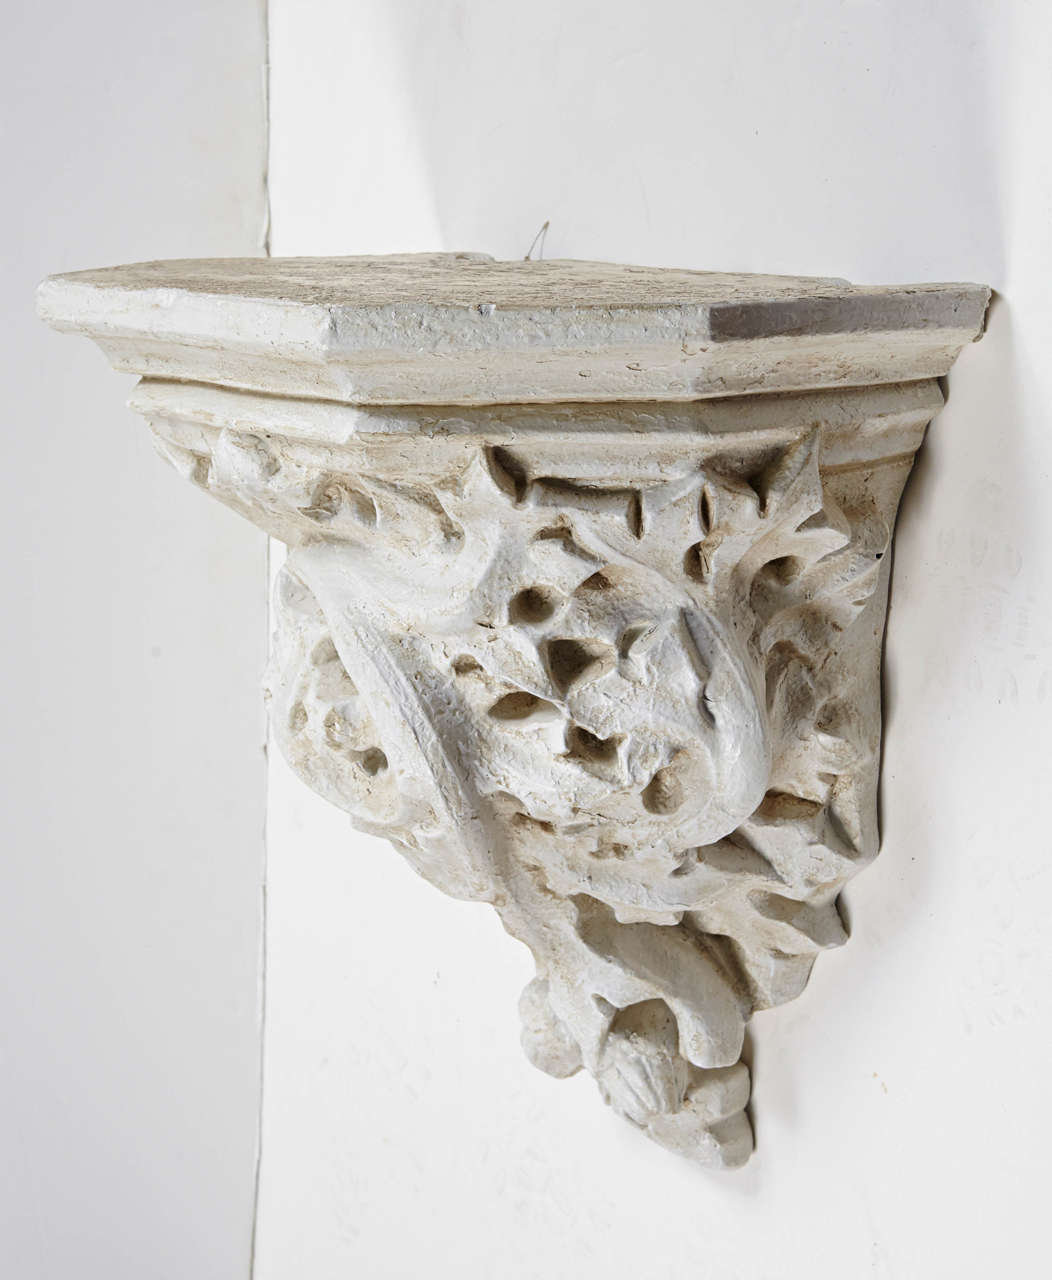 Rococo style cast wall console / bracket with carvings of oak leaves and acorns.